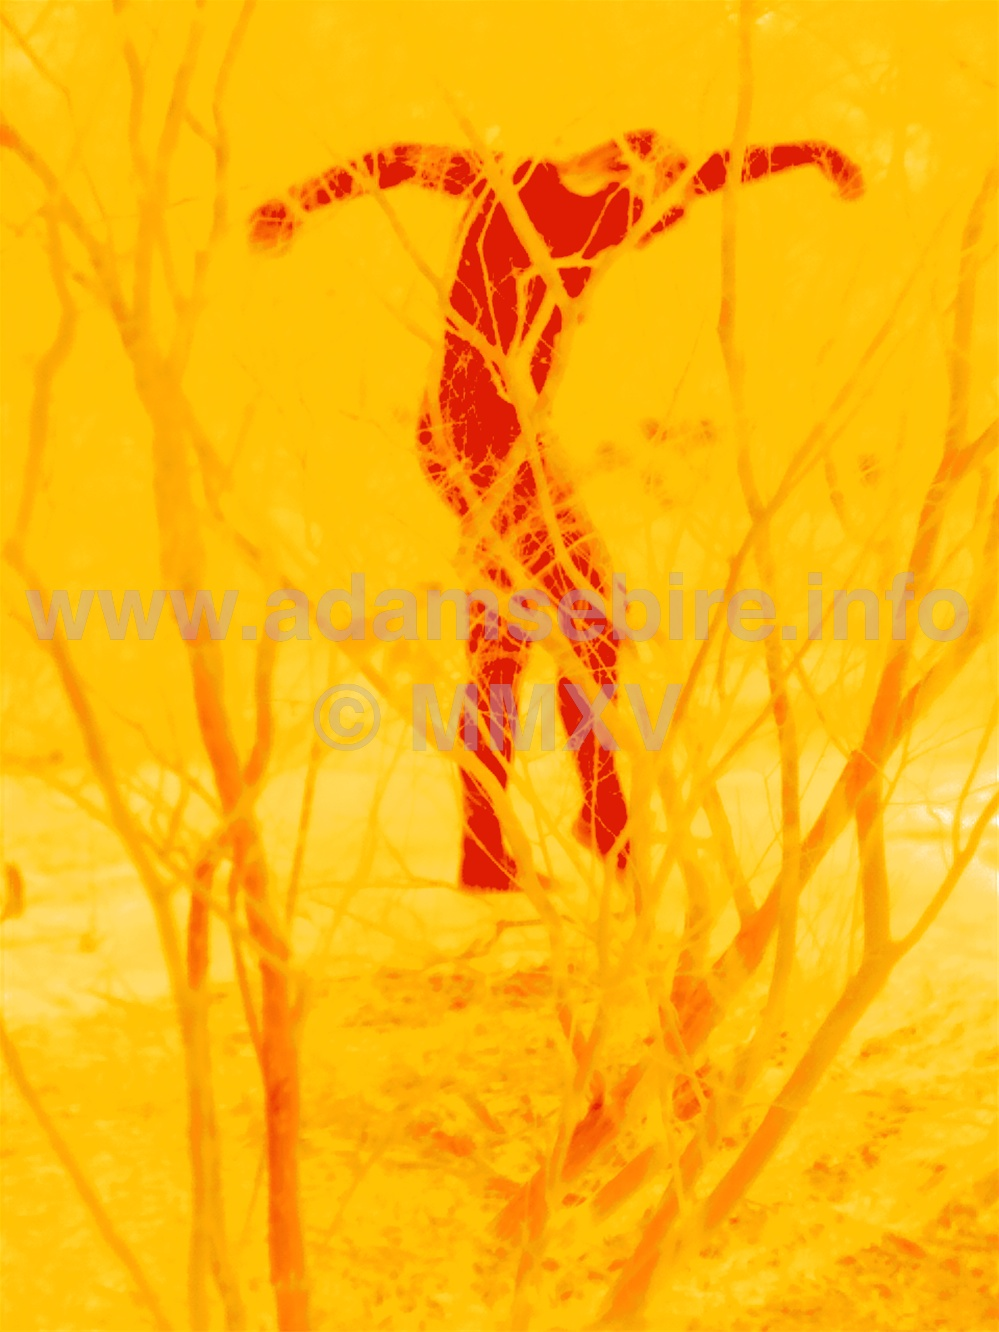 Climate change and the anthropocene - thermographic art